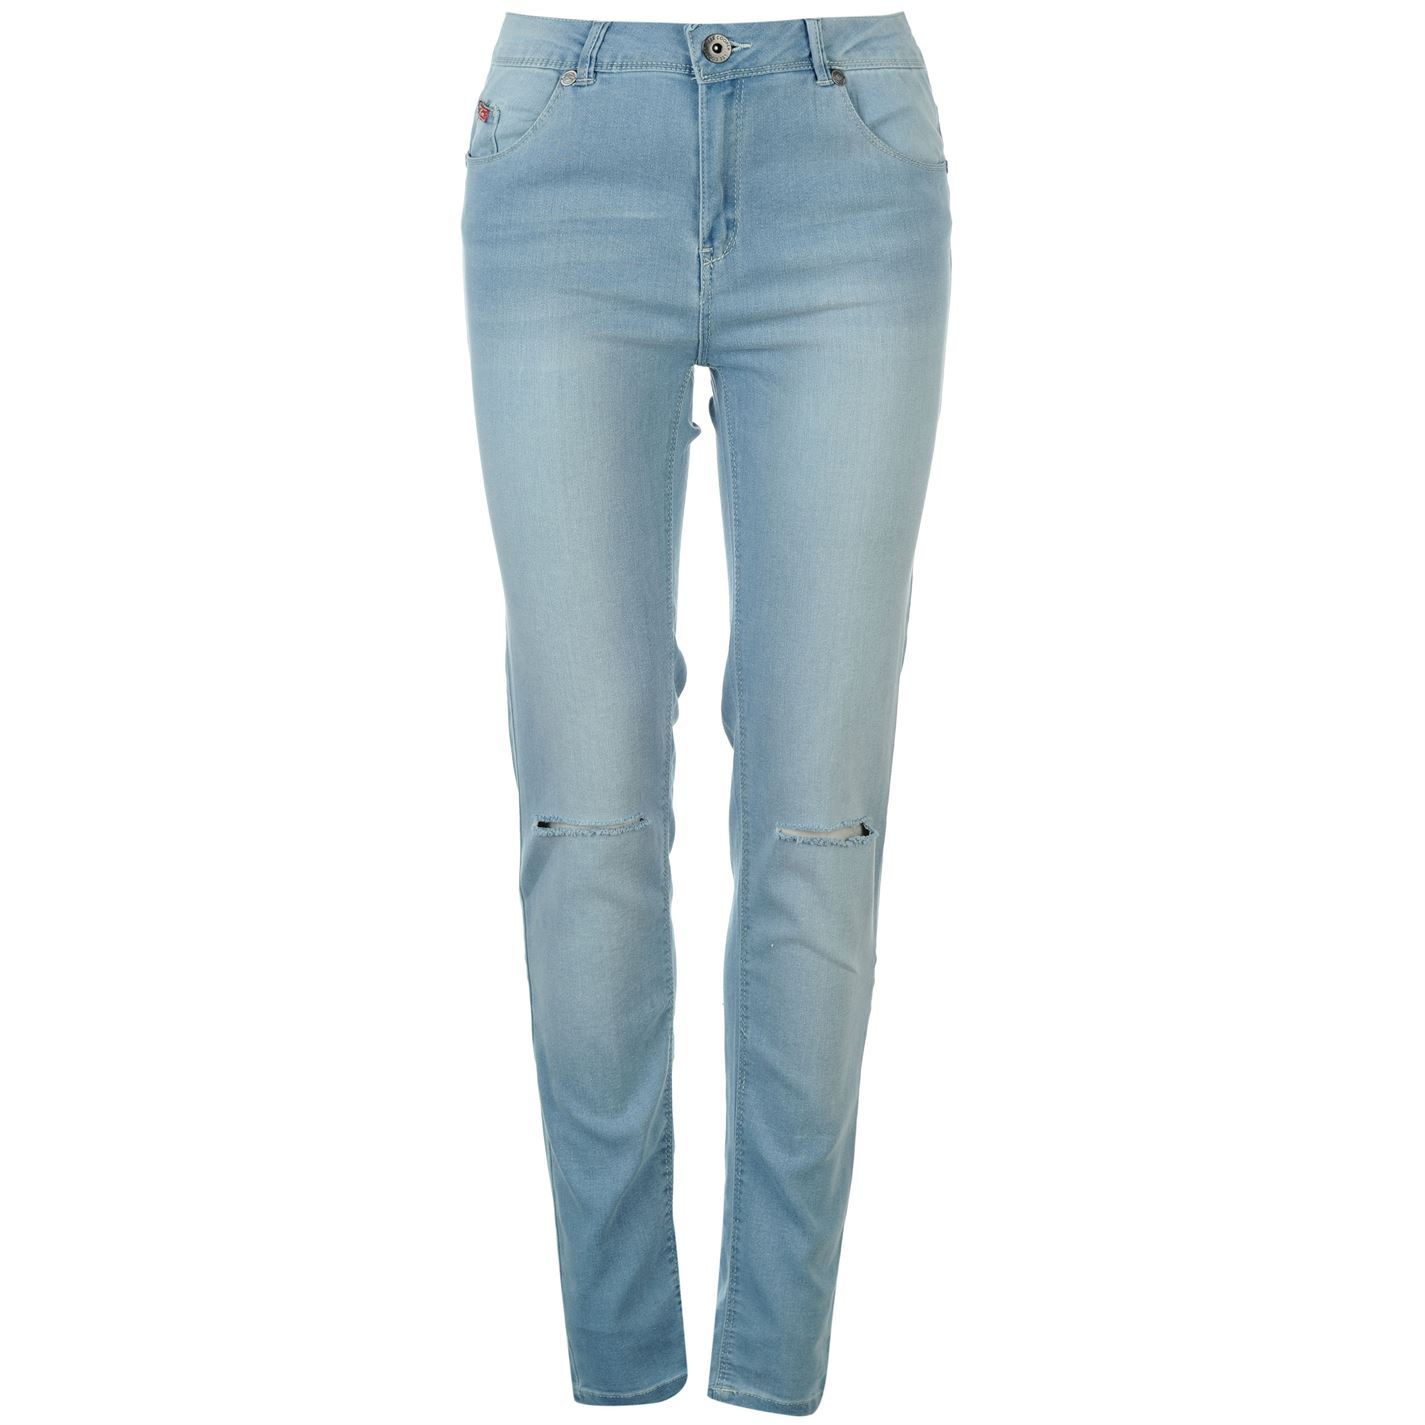 lee cooper jeans for women - photo #30